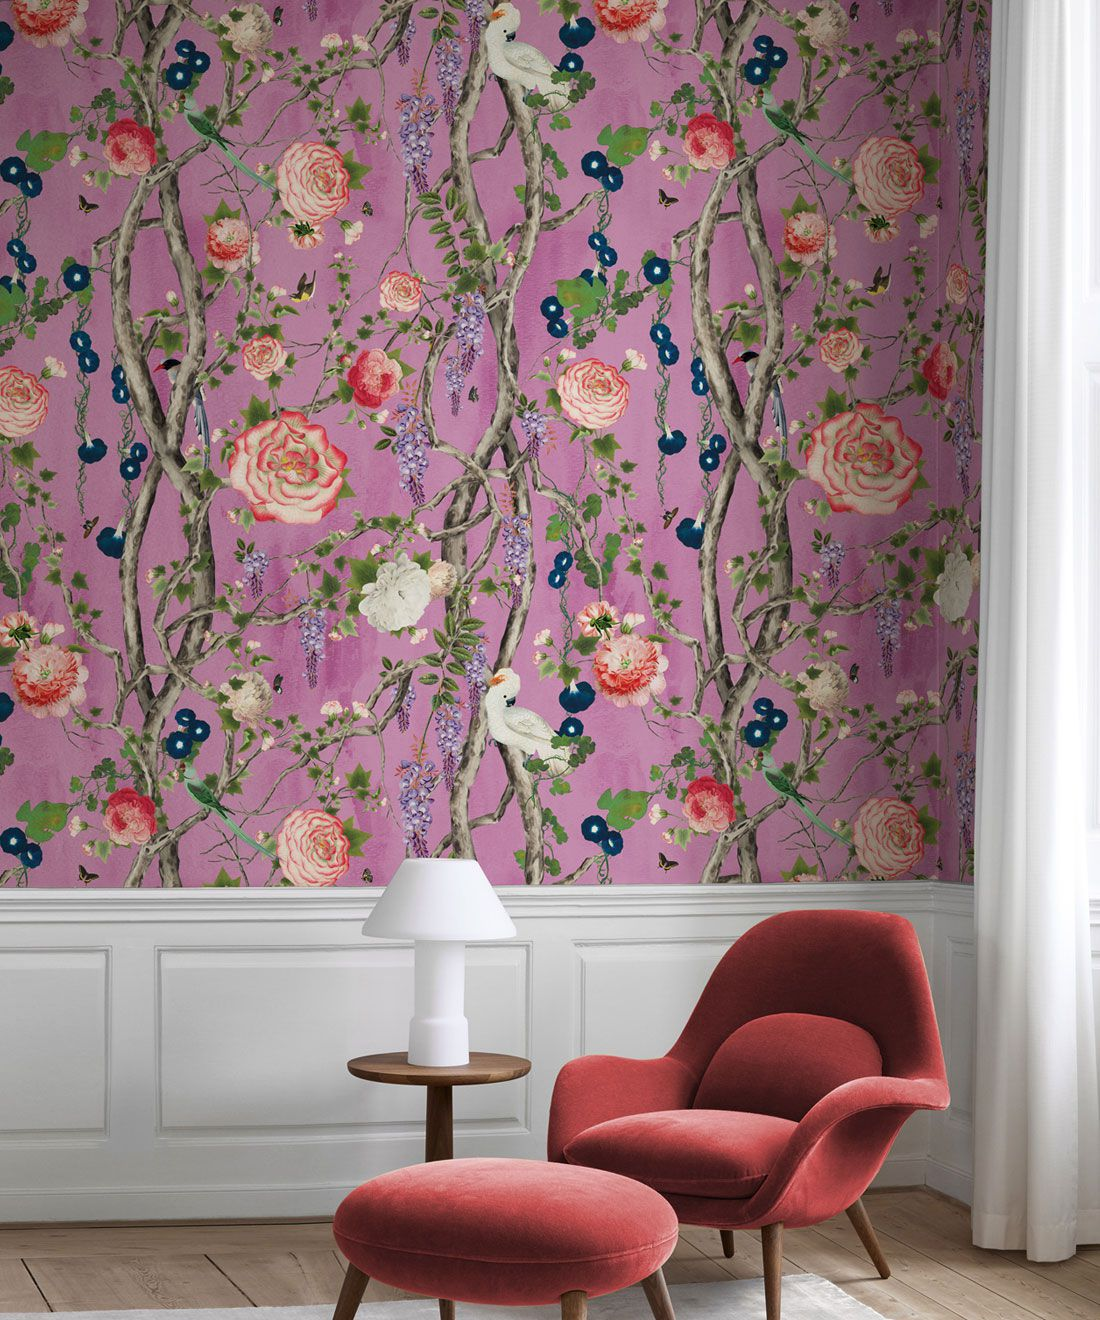 Empress Wallpaper • Romantic Wallpaper • Floral Wallpaper • Chinoiserie Wallpaper • Plum color wallpaper insitu